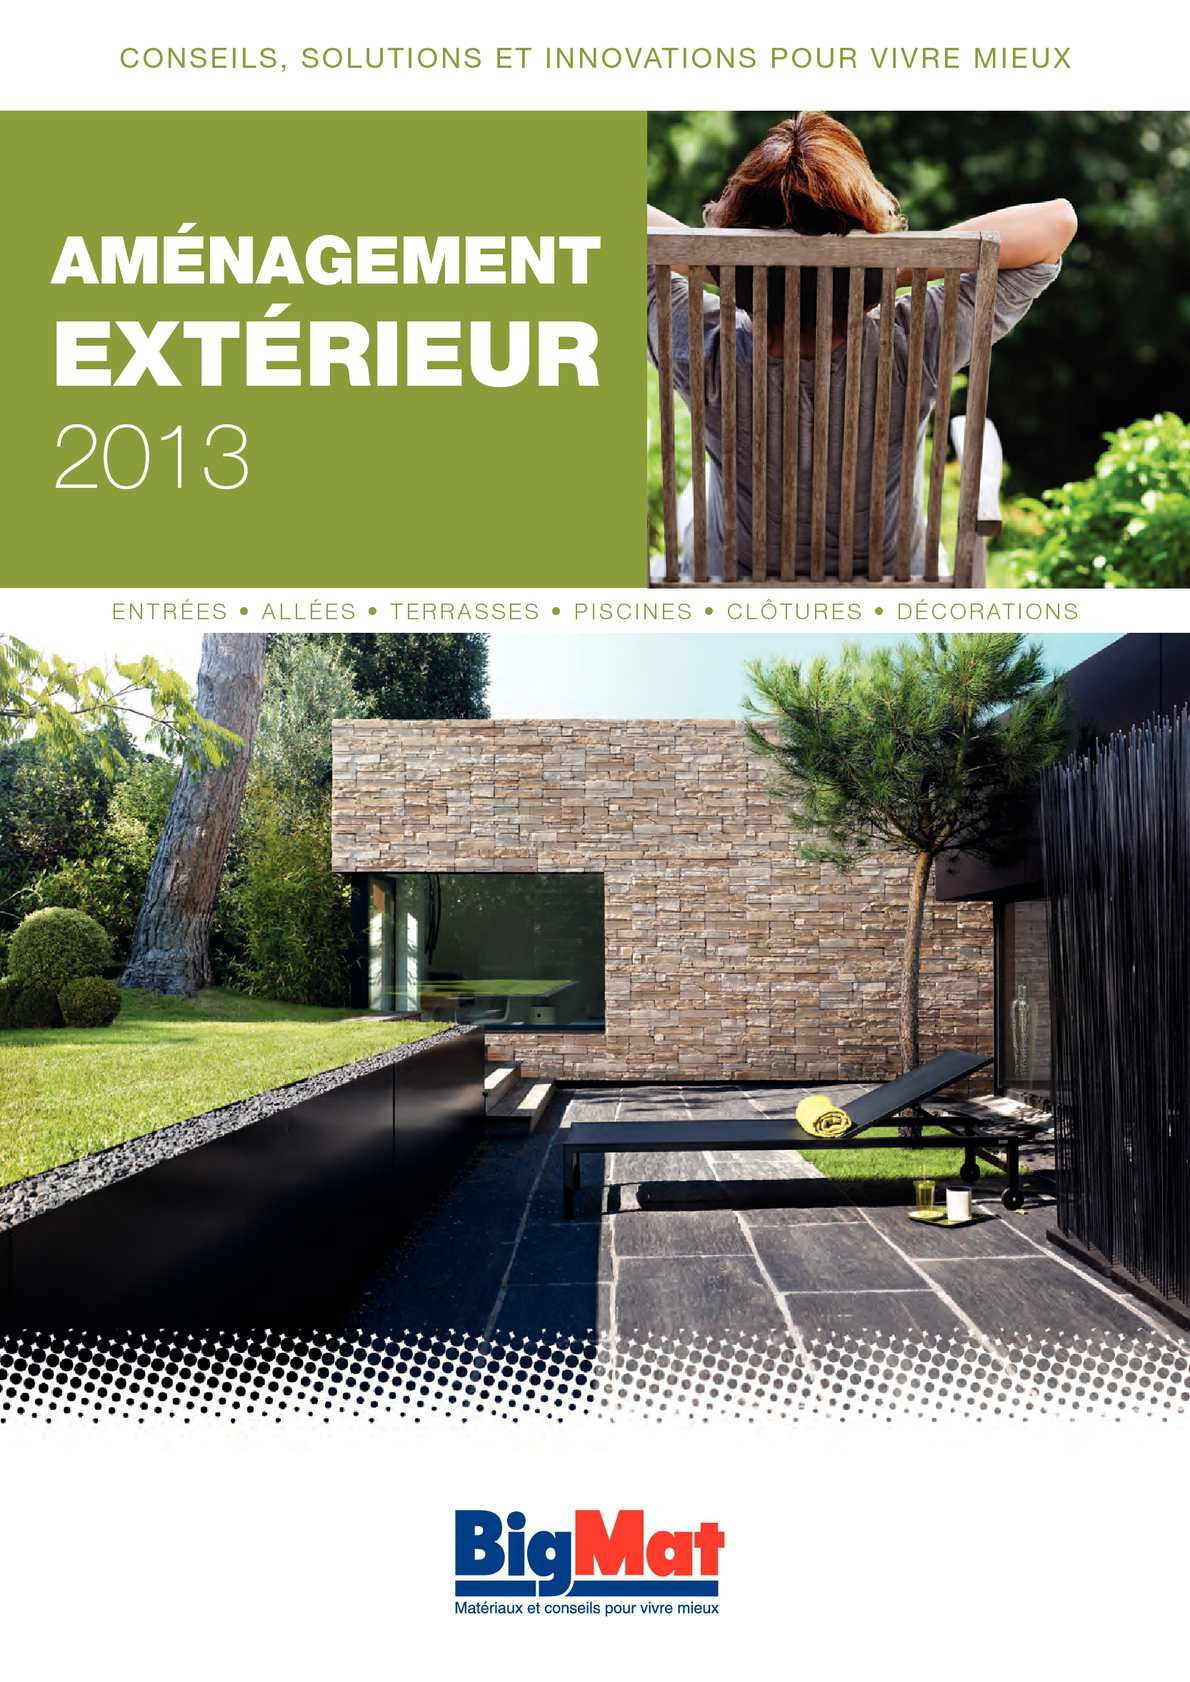 Plot De Terrasse Calaméo - Catalogue Bigmat Amenagement Exterieur 2013 - Est